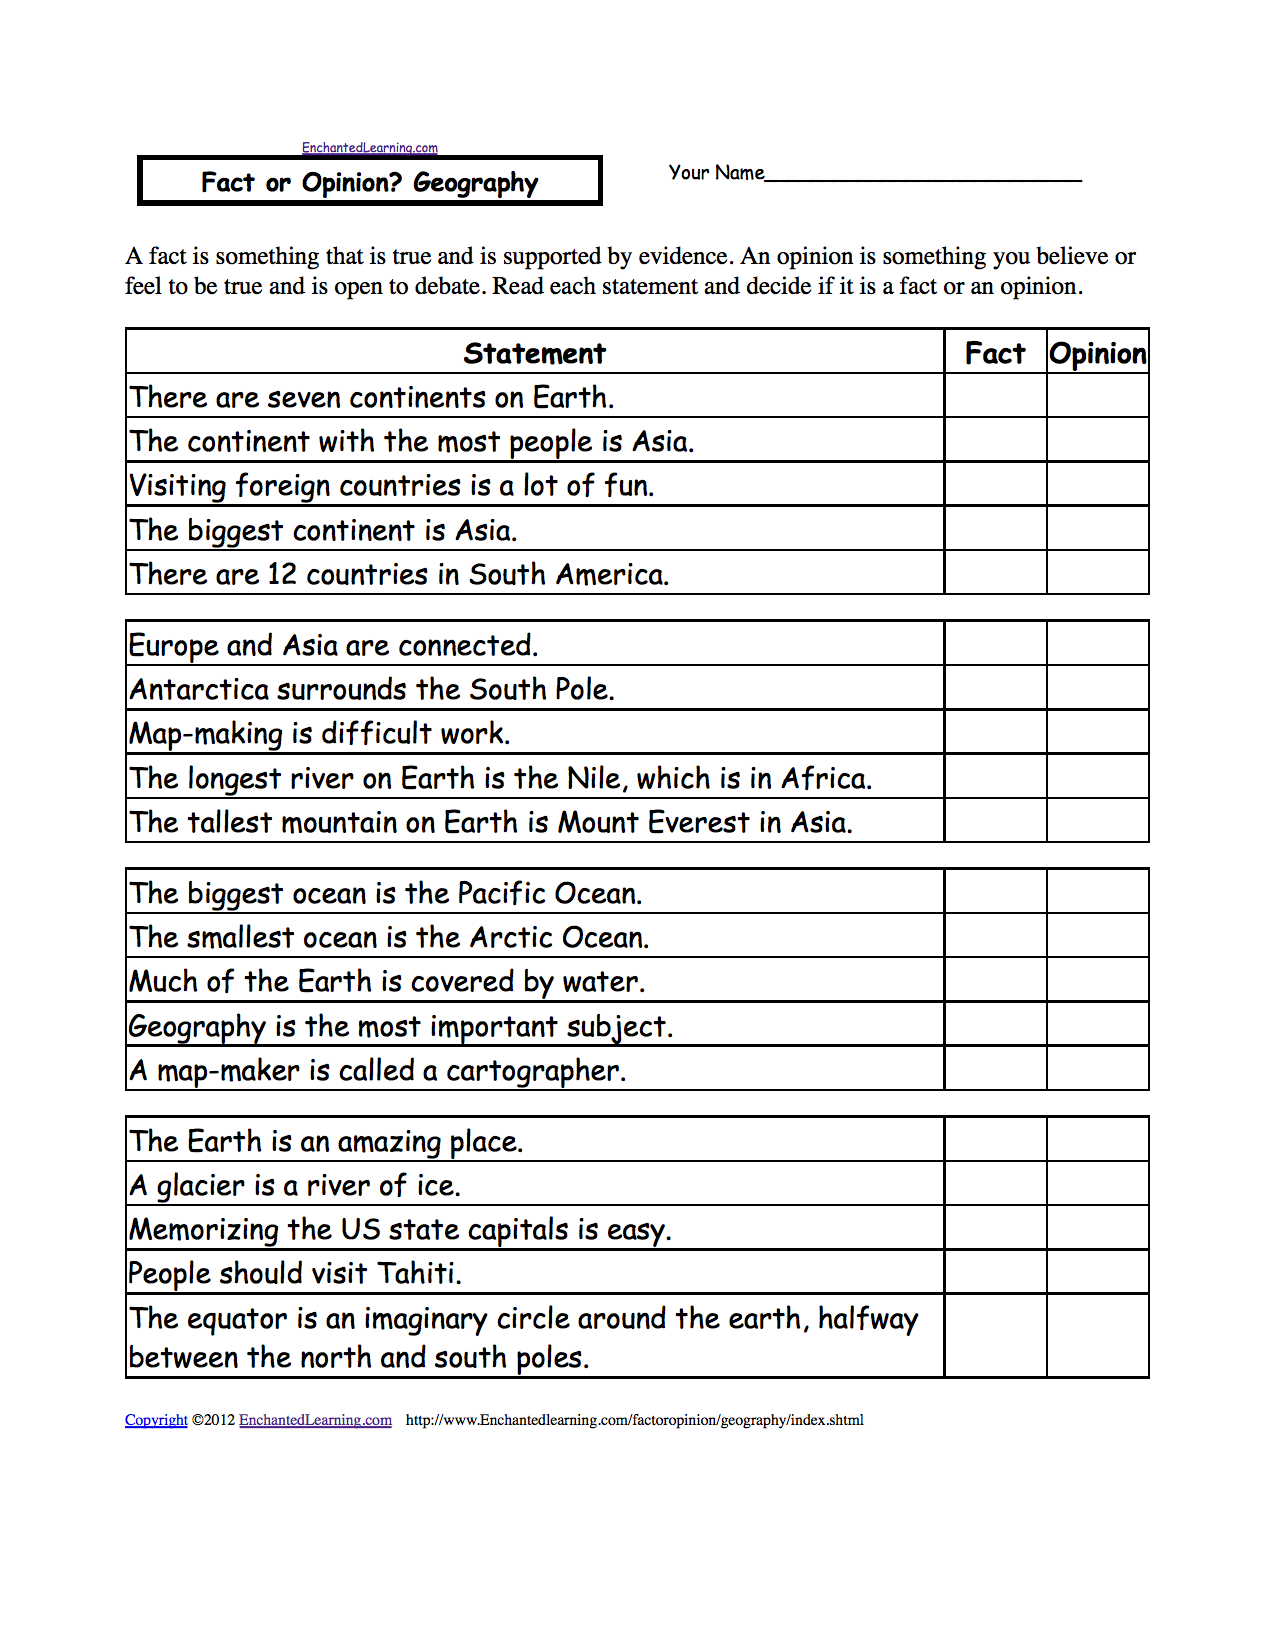 Fact or Opinion Checkmark Worksheets to Print EnchantedLearning – Geography Worksheets High School